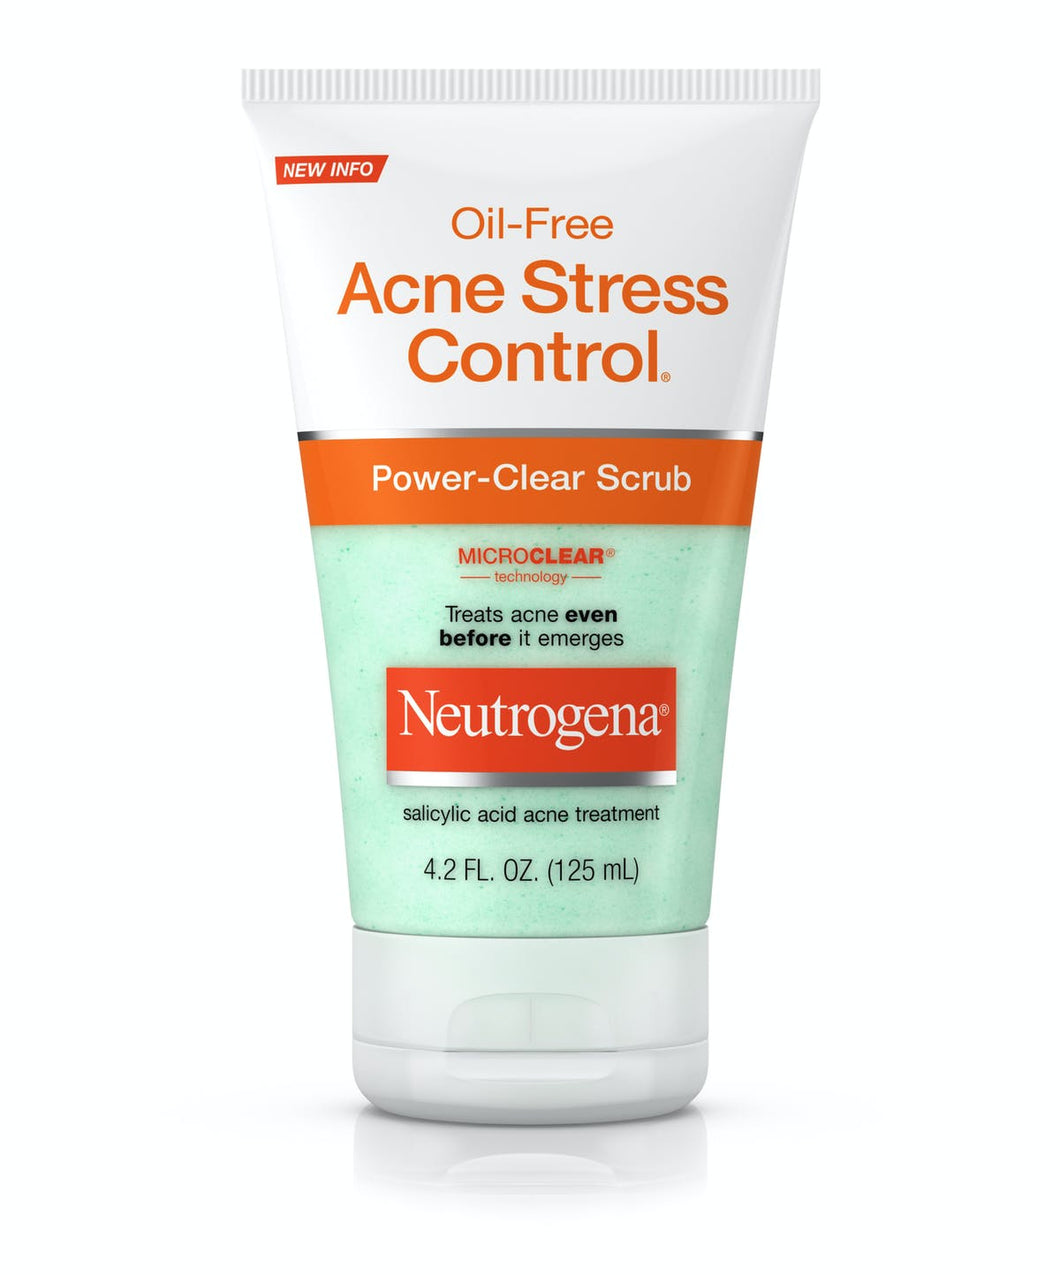 Neutrogena Oil-Free Acne Stress Control, Power-Clear Scrub